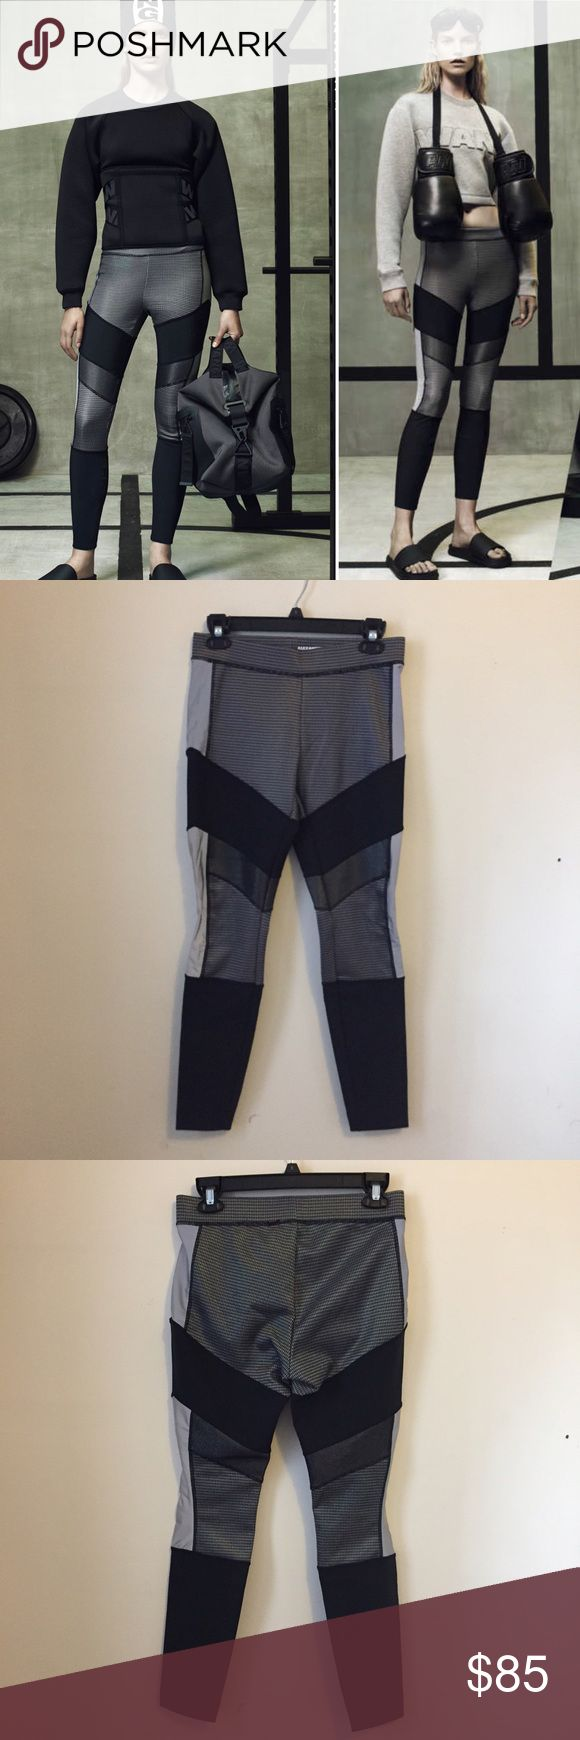 NWT Alexander Wang for H&M Leggings Black, silver, and grey leggings from the sold out Alexander Wang collection for H&M. These are brand new with tags attached. Size 8. H&M Pants Leggings